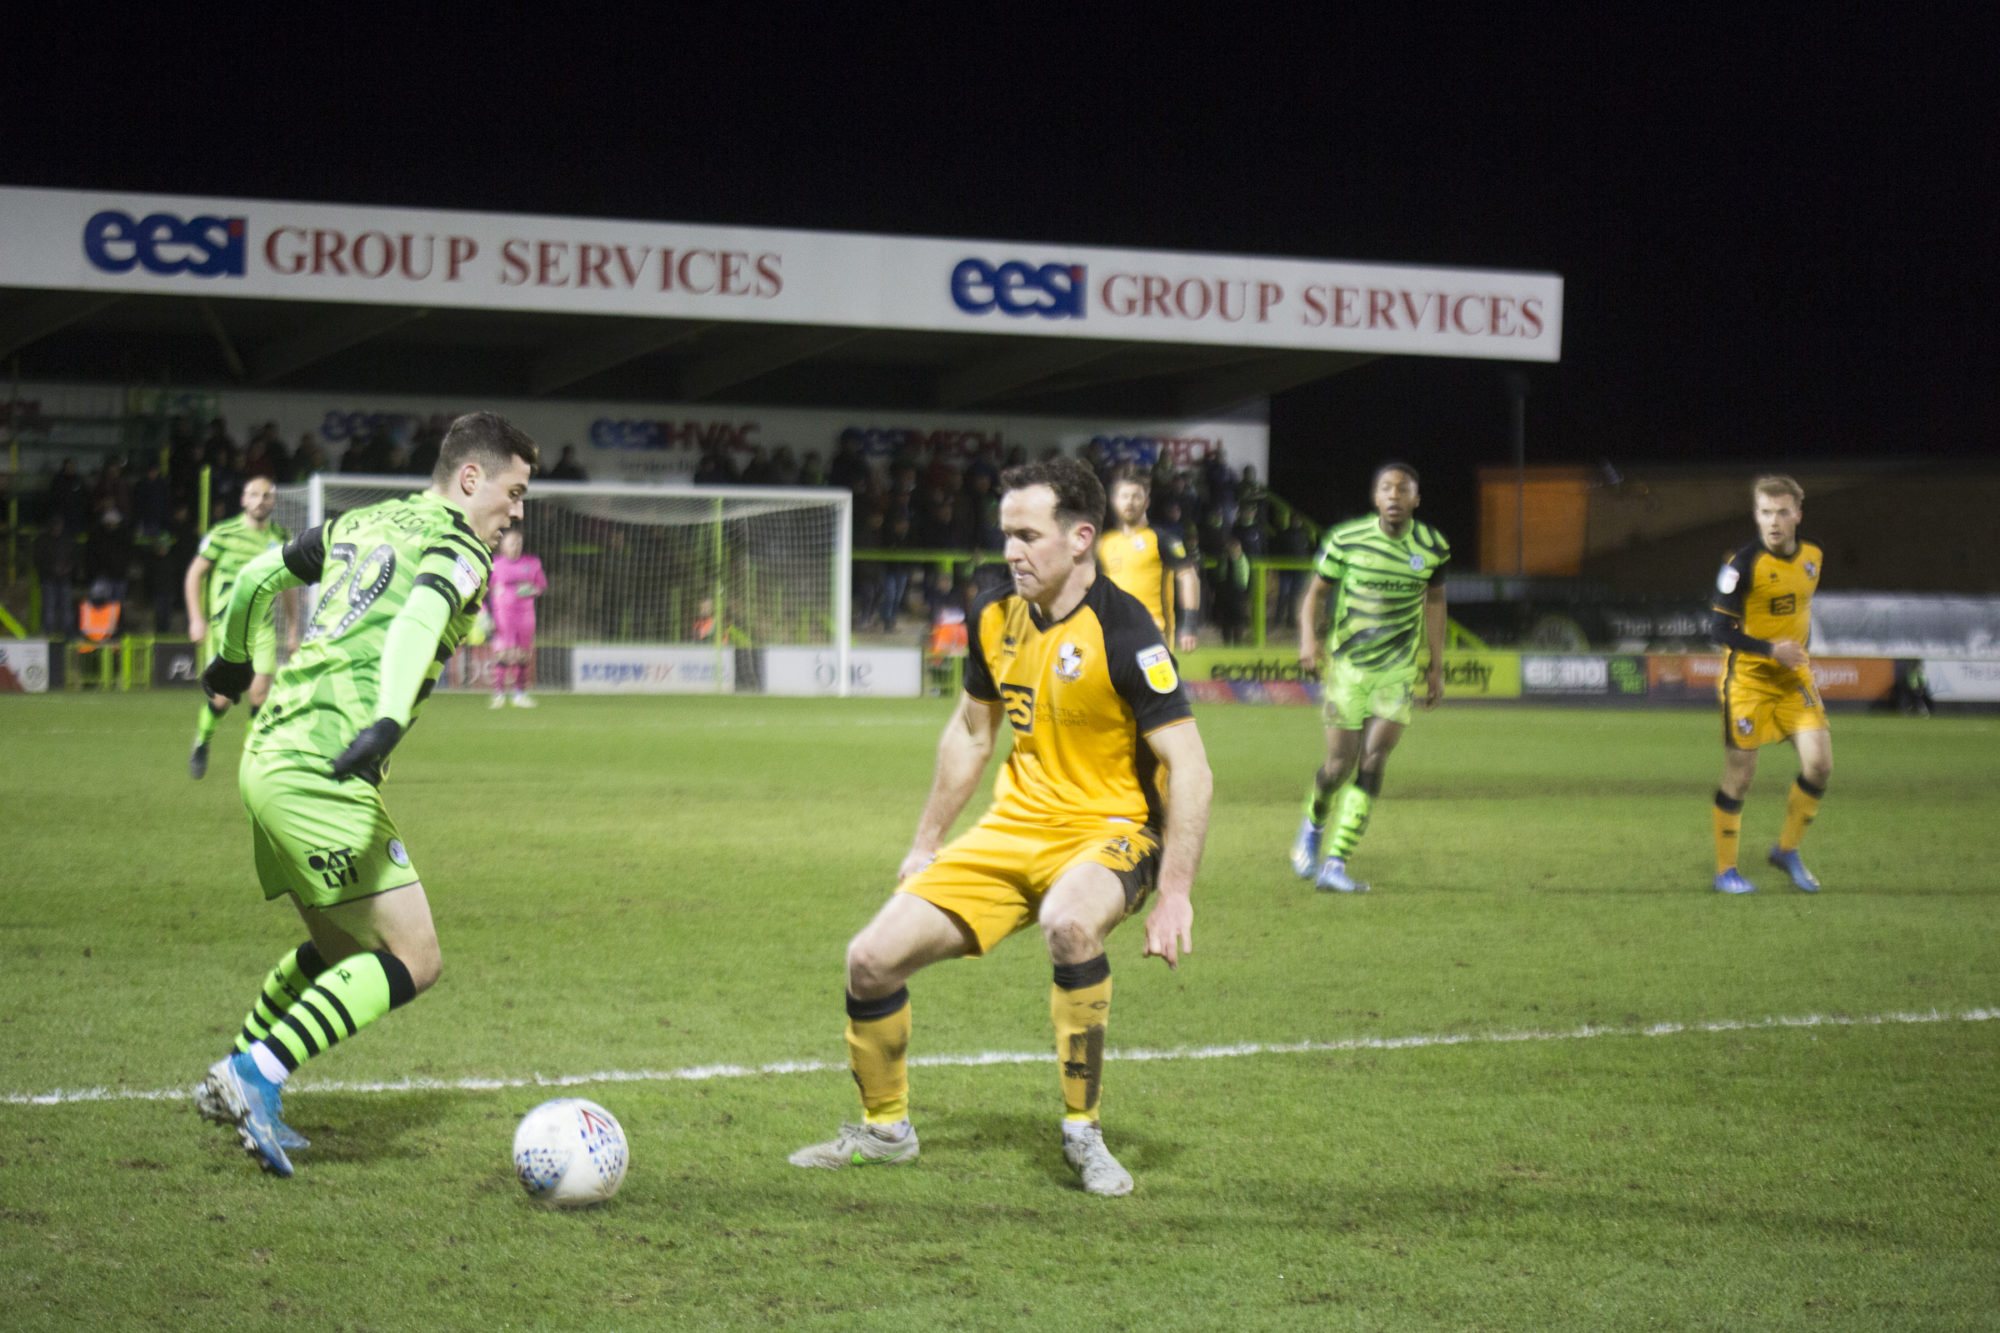 FGR's Jack Aitchison in action against Port Vale